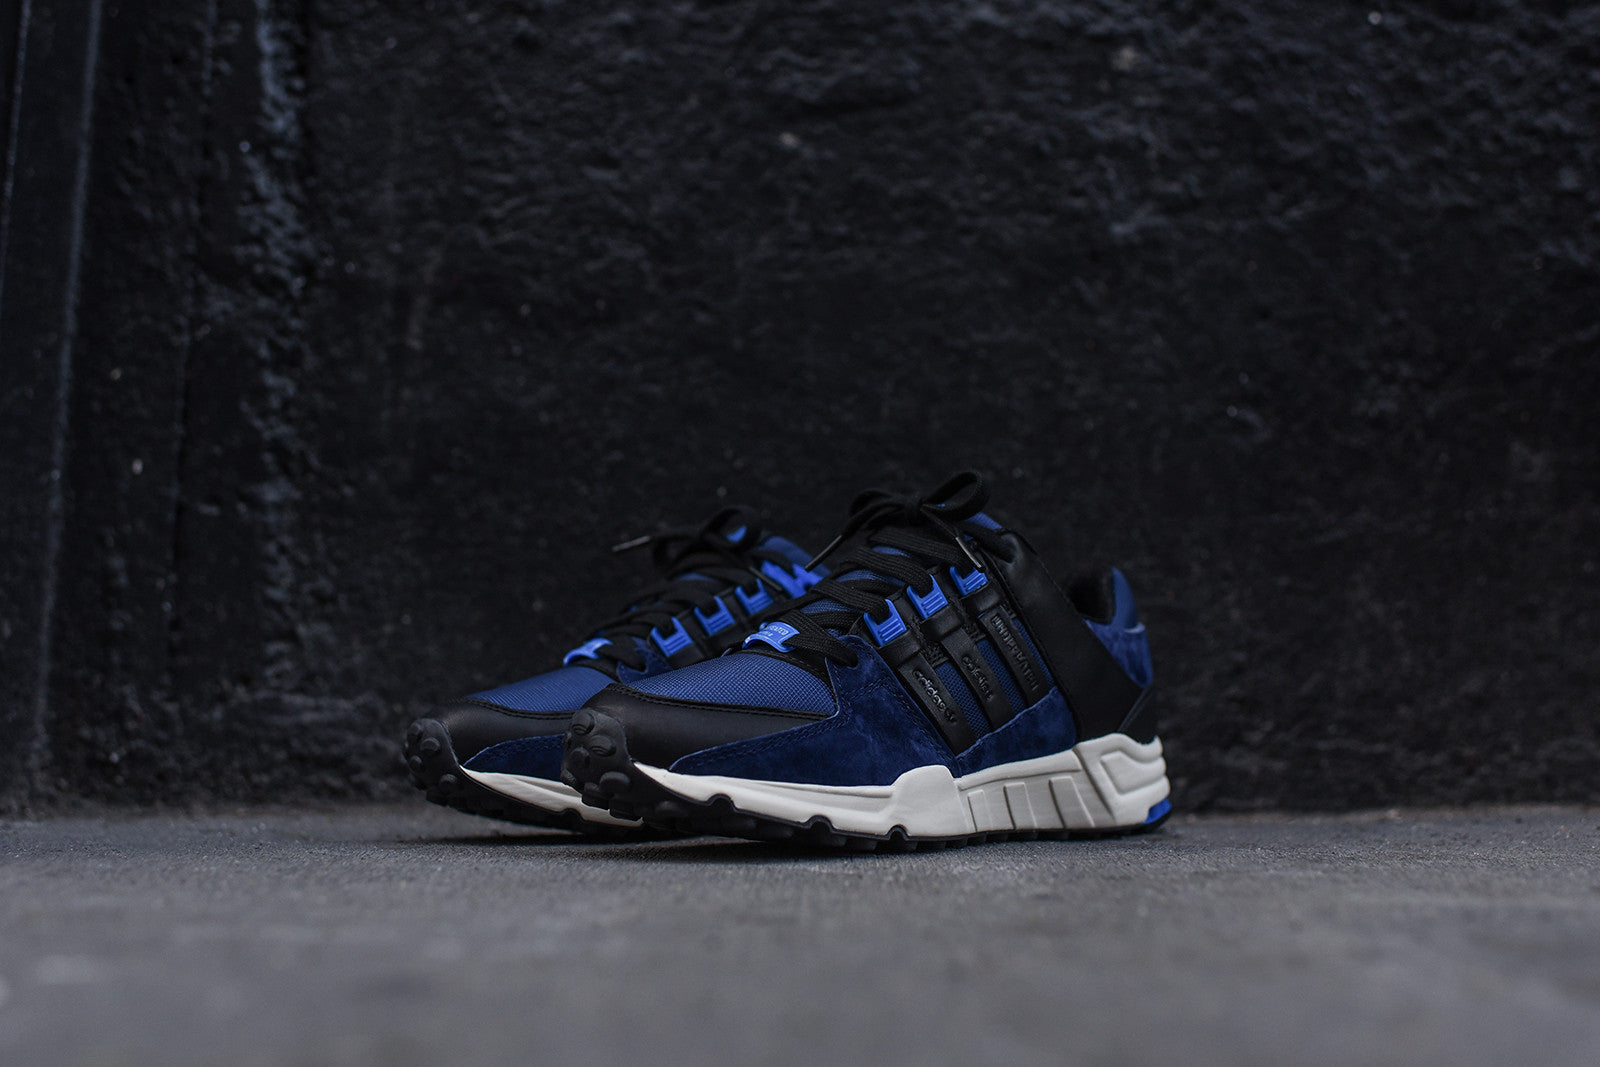 buy online d0613 90320 adidas x Colette x UNDFTD EQT Support